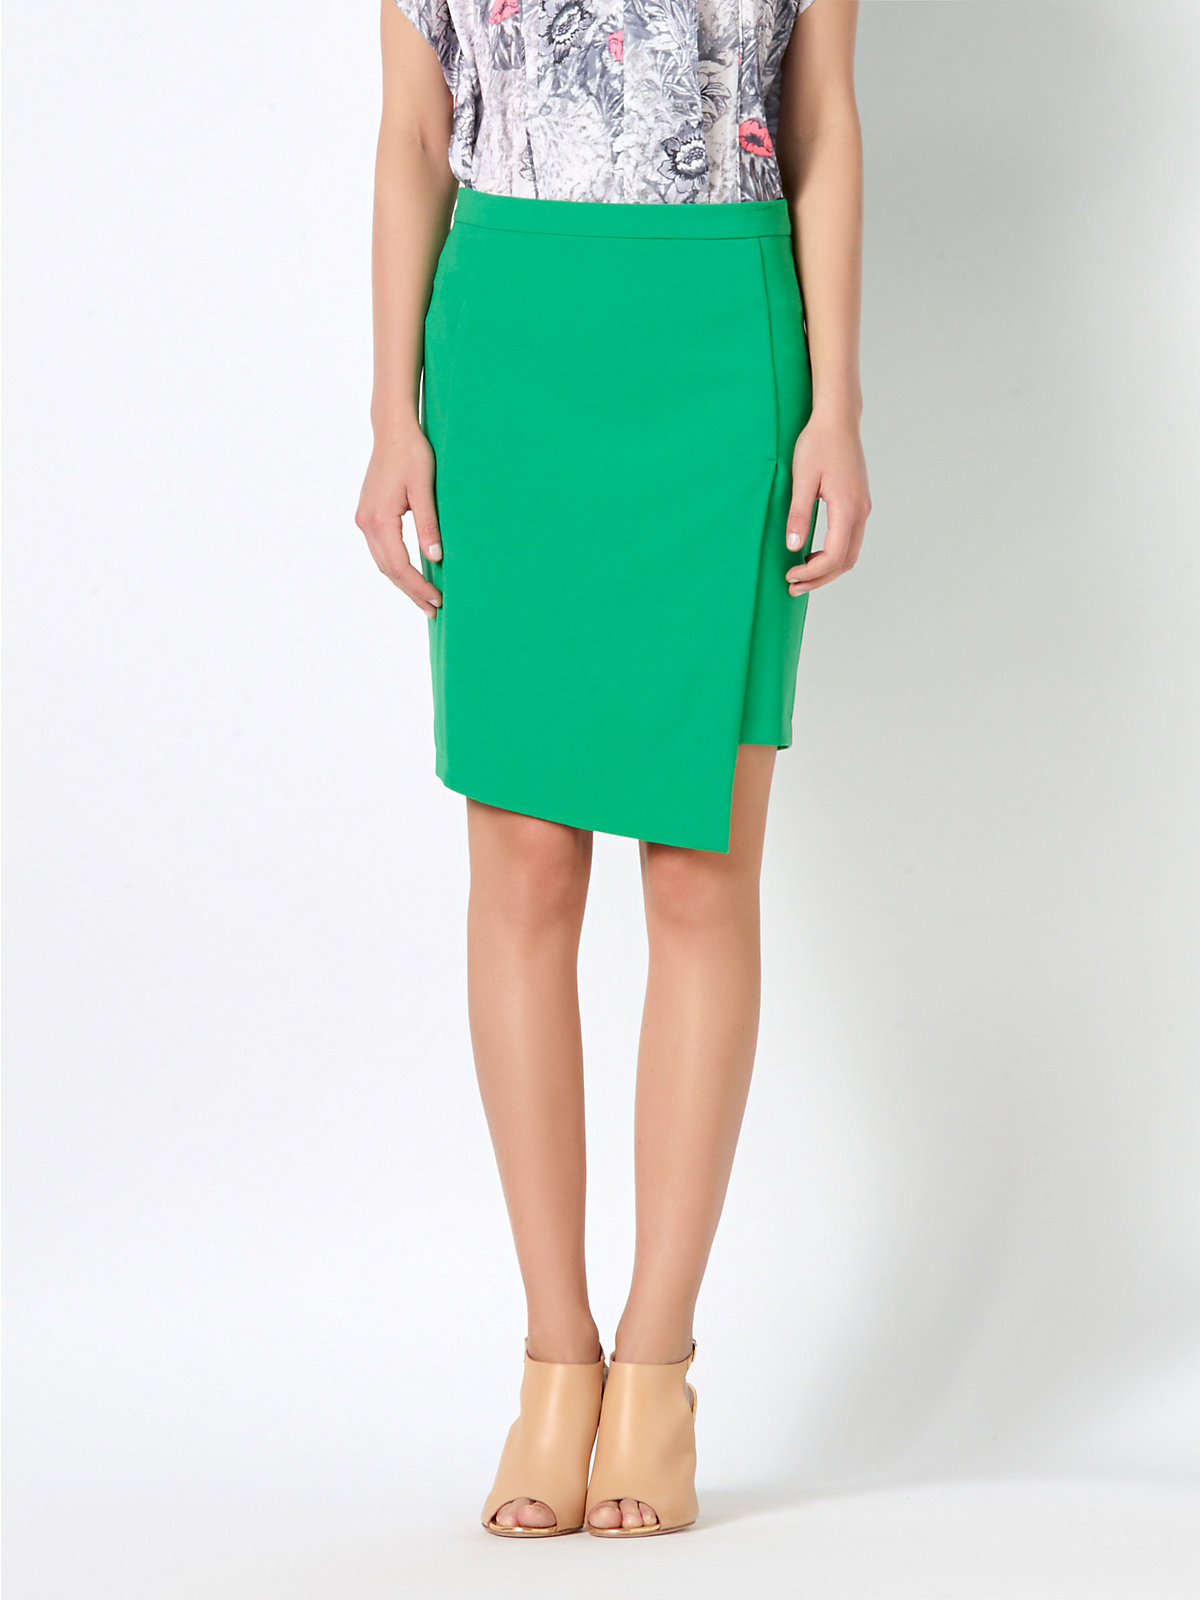 patrizia pepe pencil skirt in stretch fabric in green